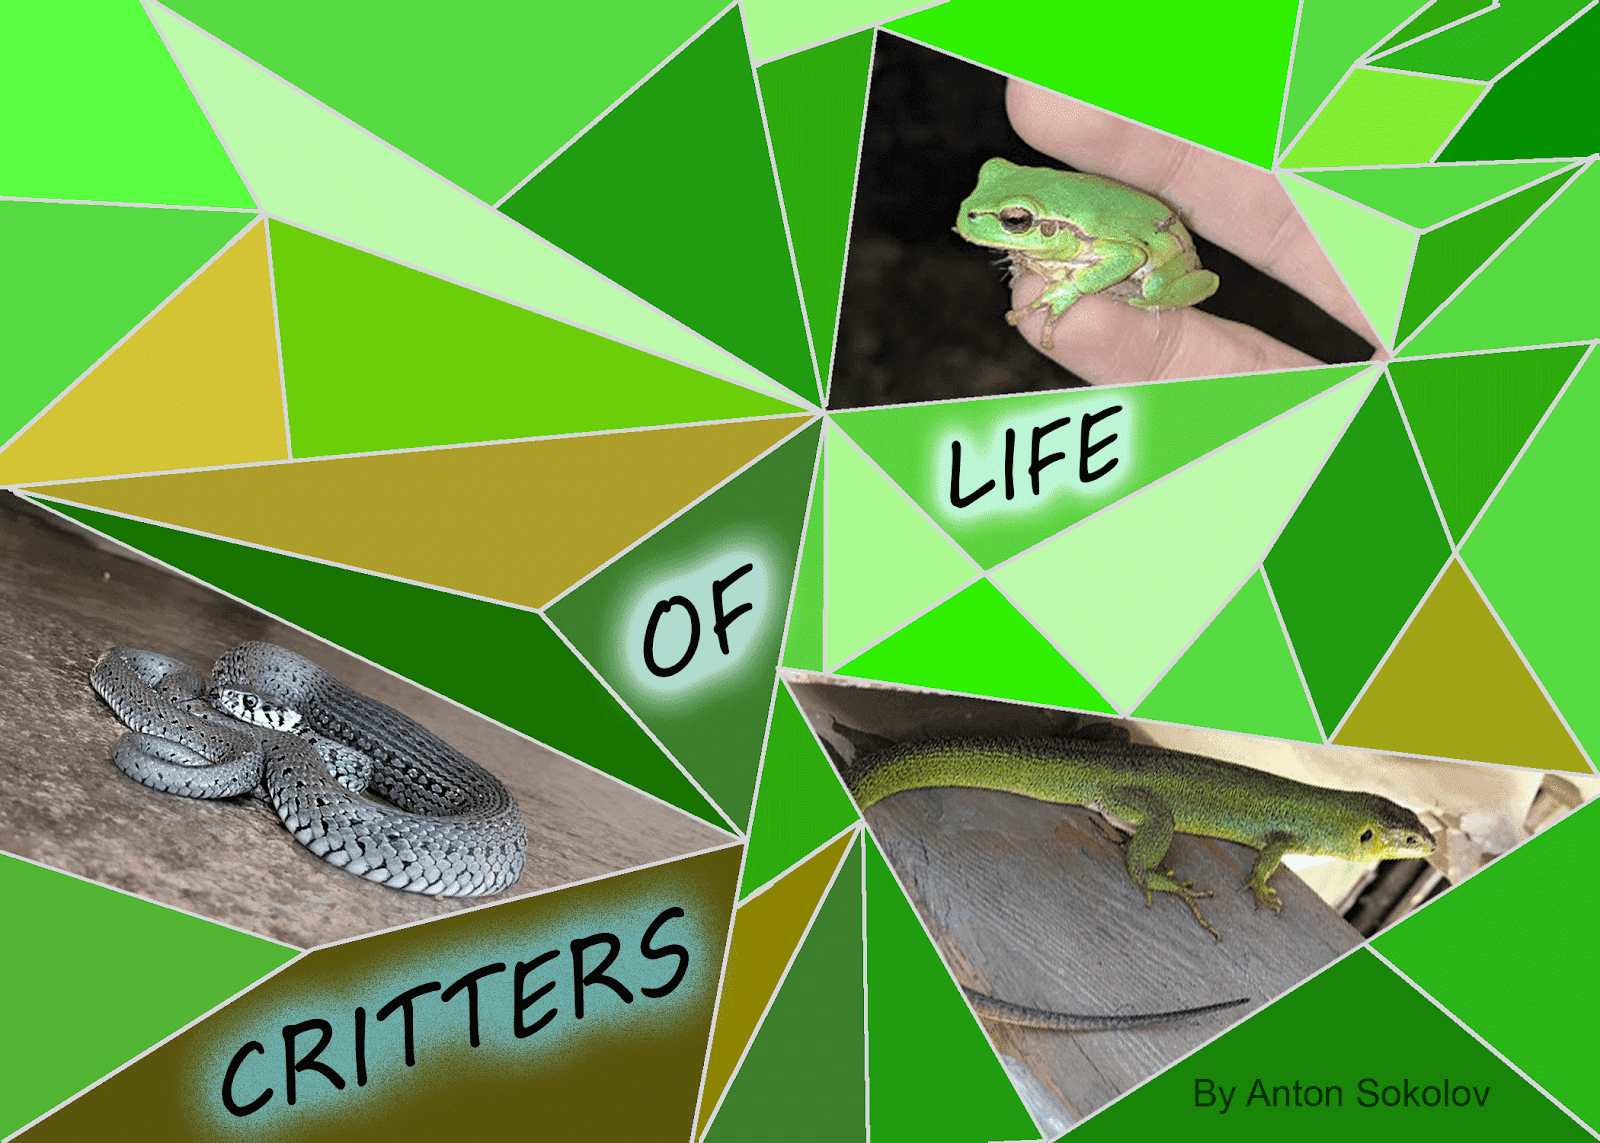 Life Of Critters